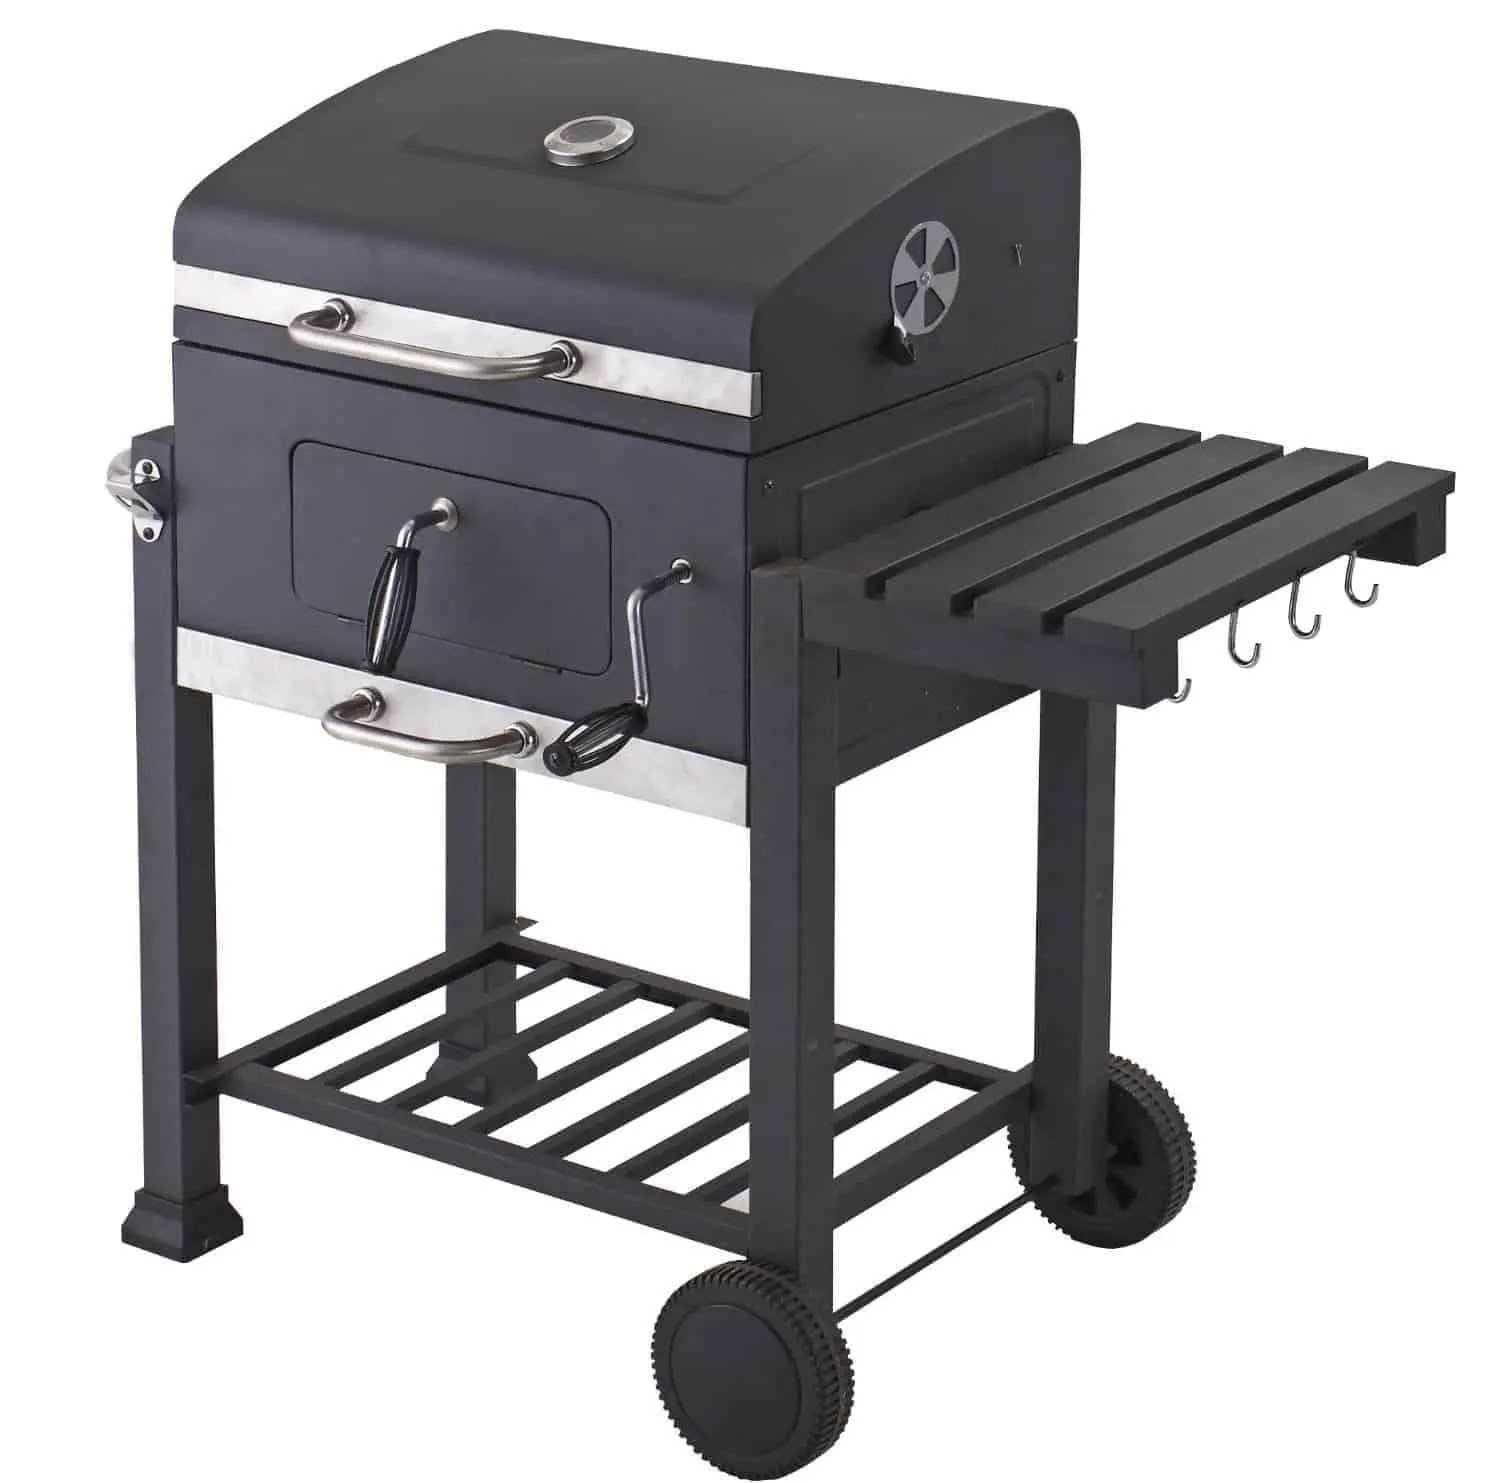 Aldi Keuken Walmart Gas Grills On Sale